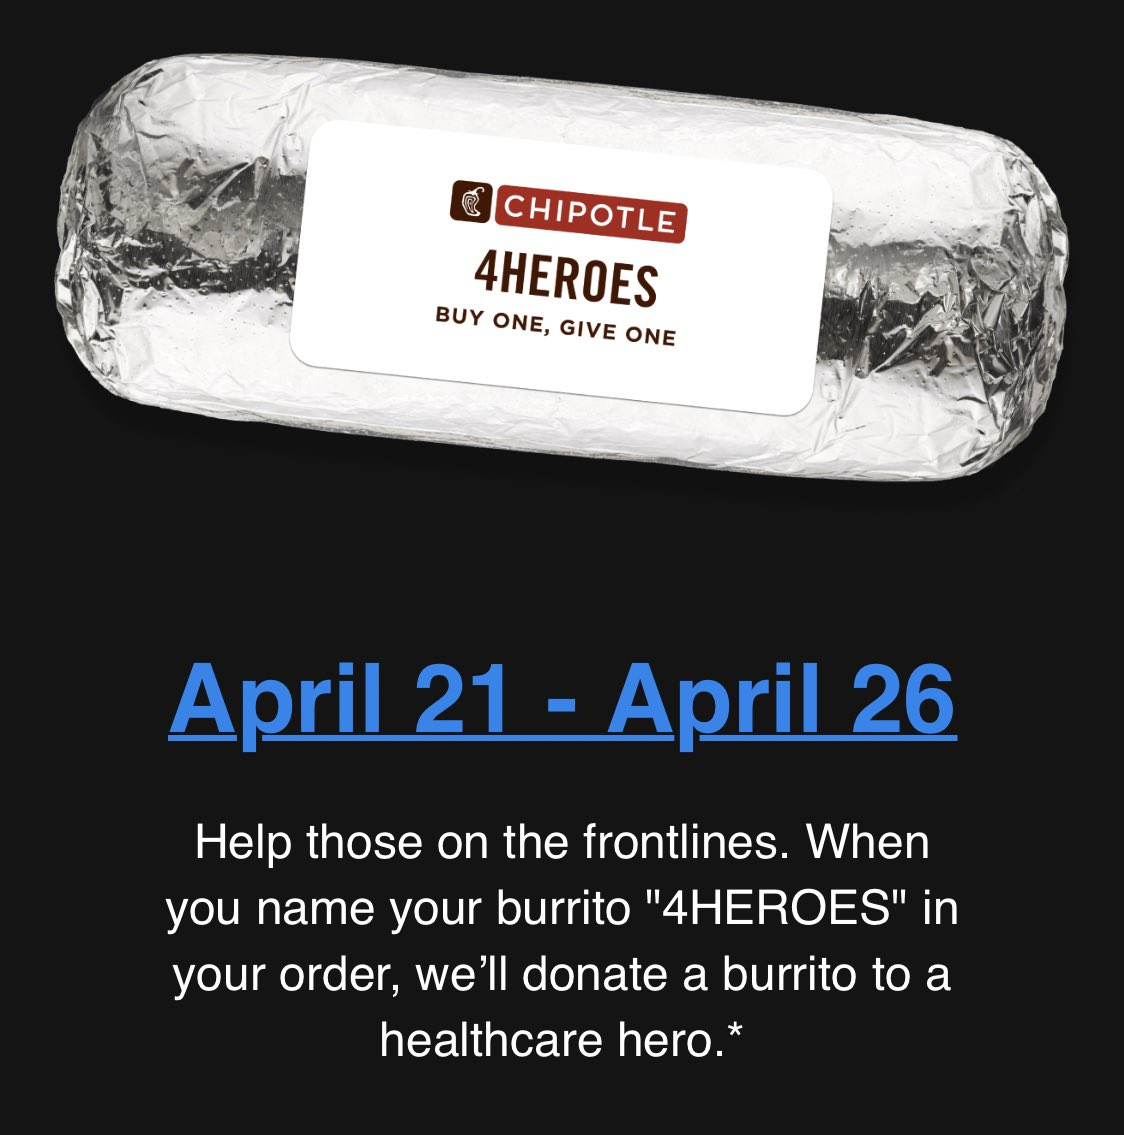 """@pulte IF ANYONE IS ORDERING CHIPOTLE PLEASE DO THIS!!! Name your burrito """"4HEROES"""" in your order, and Chipotle will donate a burrito to a healthcare worker!!! #chipotle #buyonegiveone https://t.co/N7MwbAqnWx"""